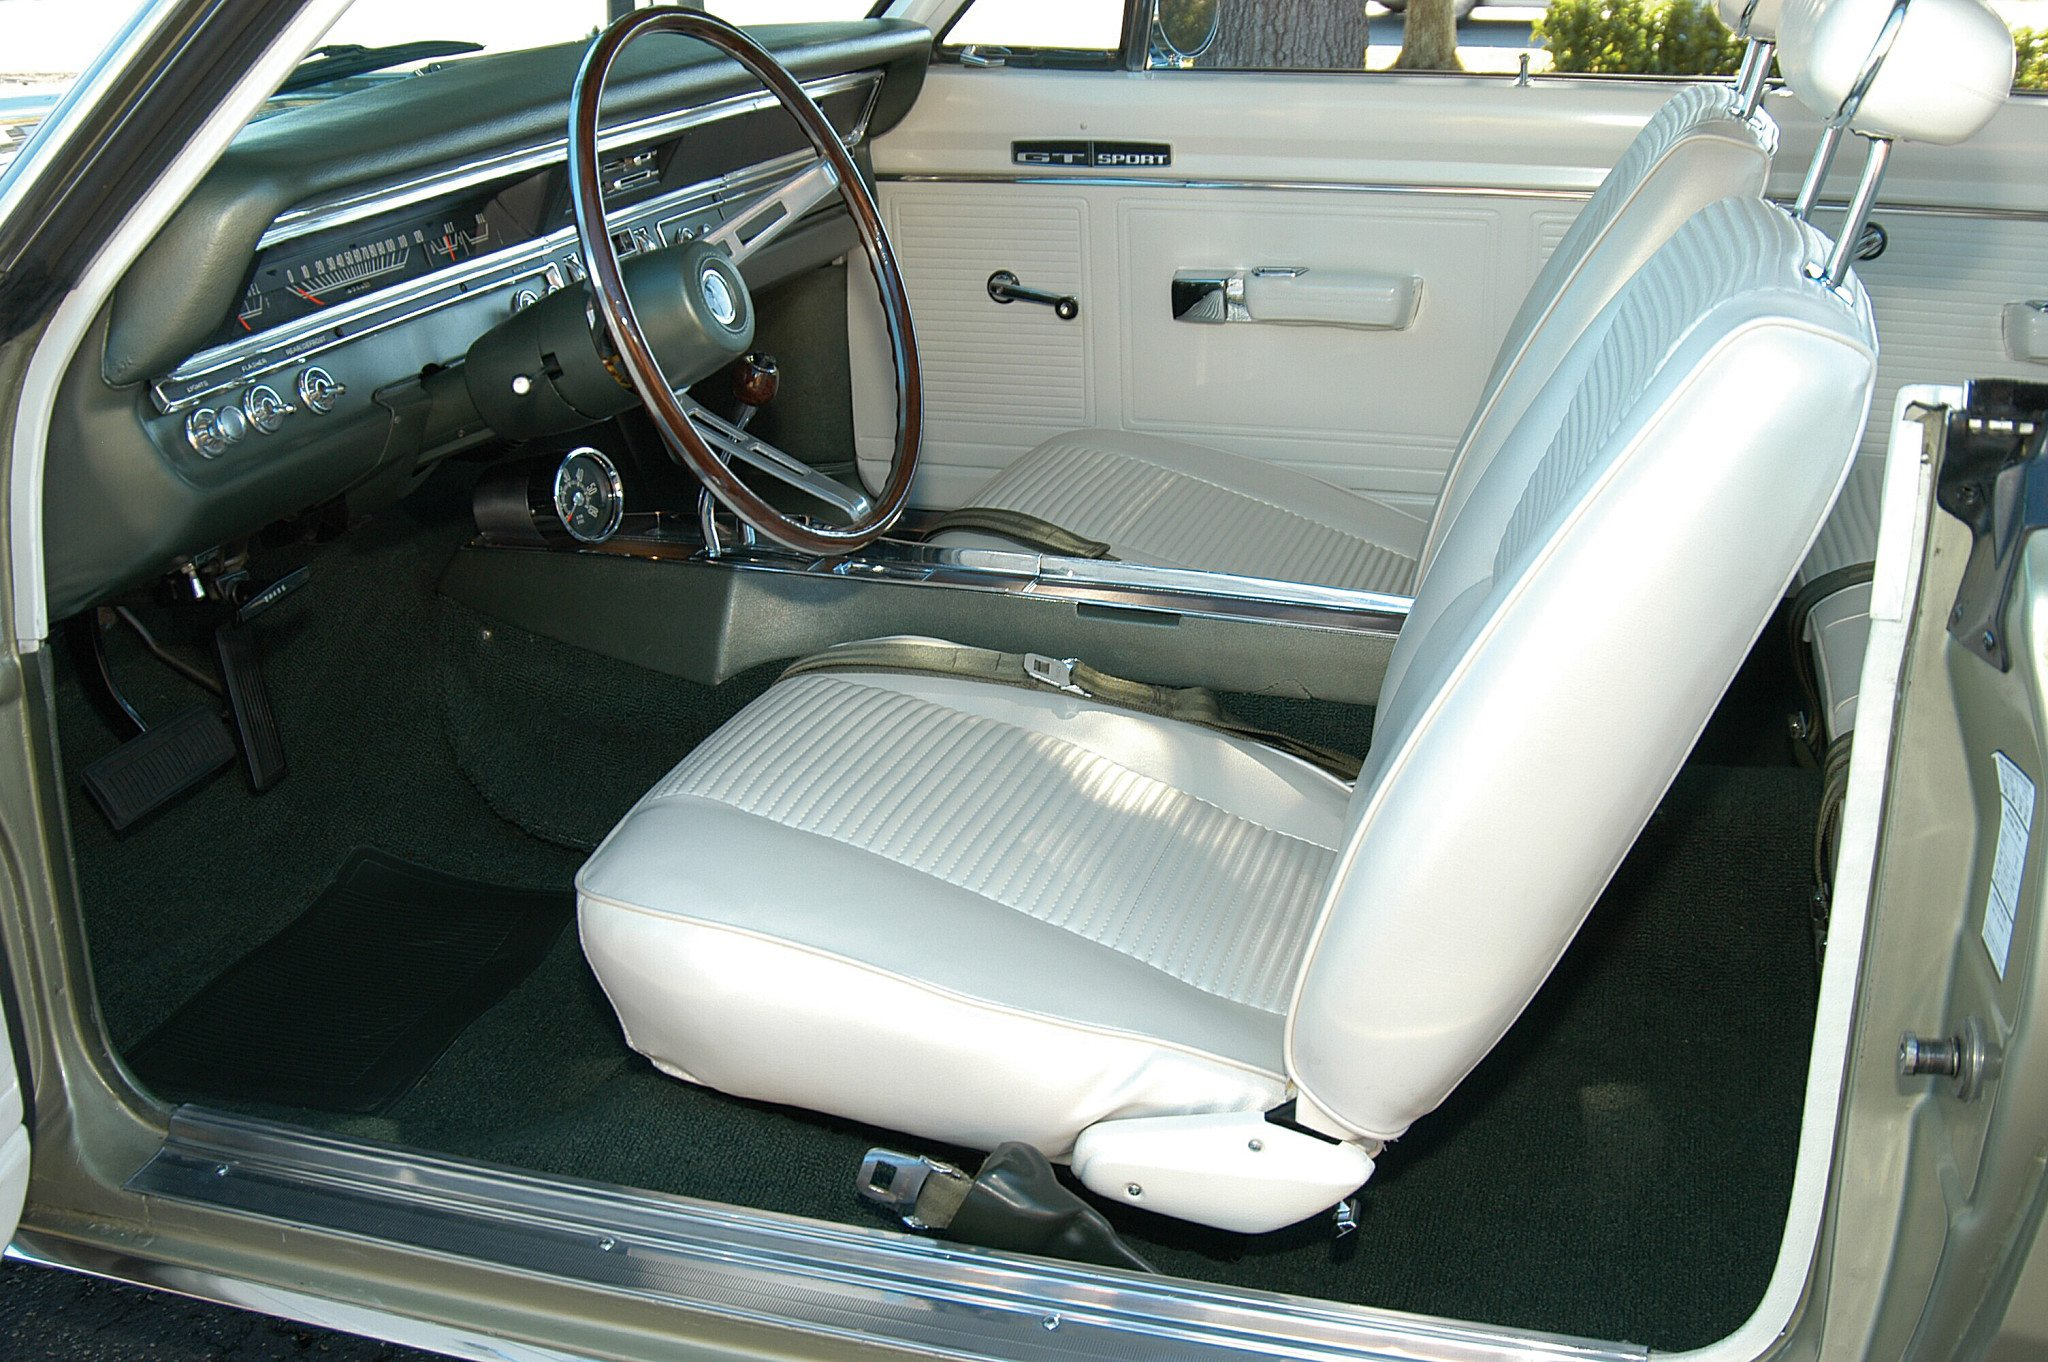 1969 Dodge Dart 340 GTS Interior